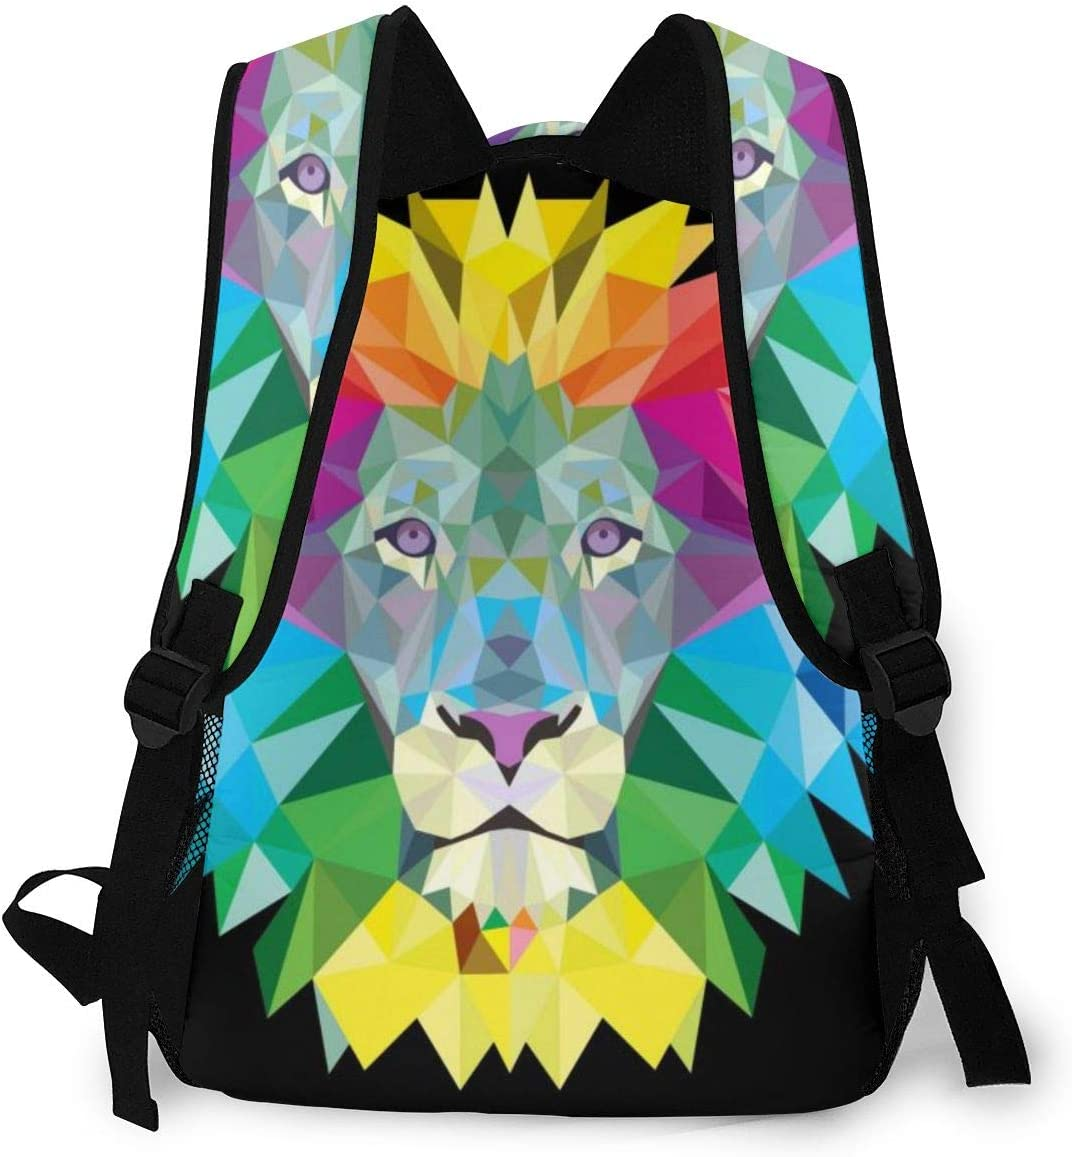 Fashion Backpack,Colorful Hair Lion Canvas Laptop Bag,Casual School Daypack For Travel Business College With Black Leather Stitches